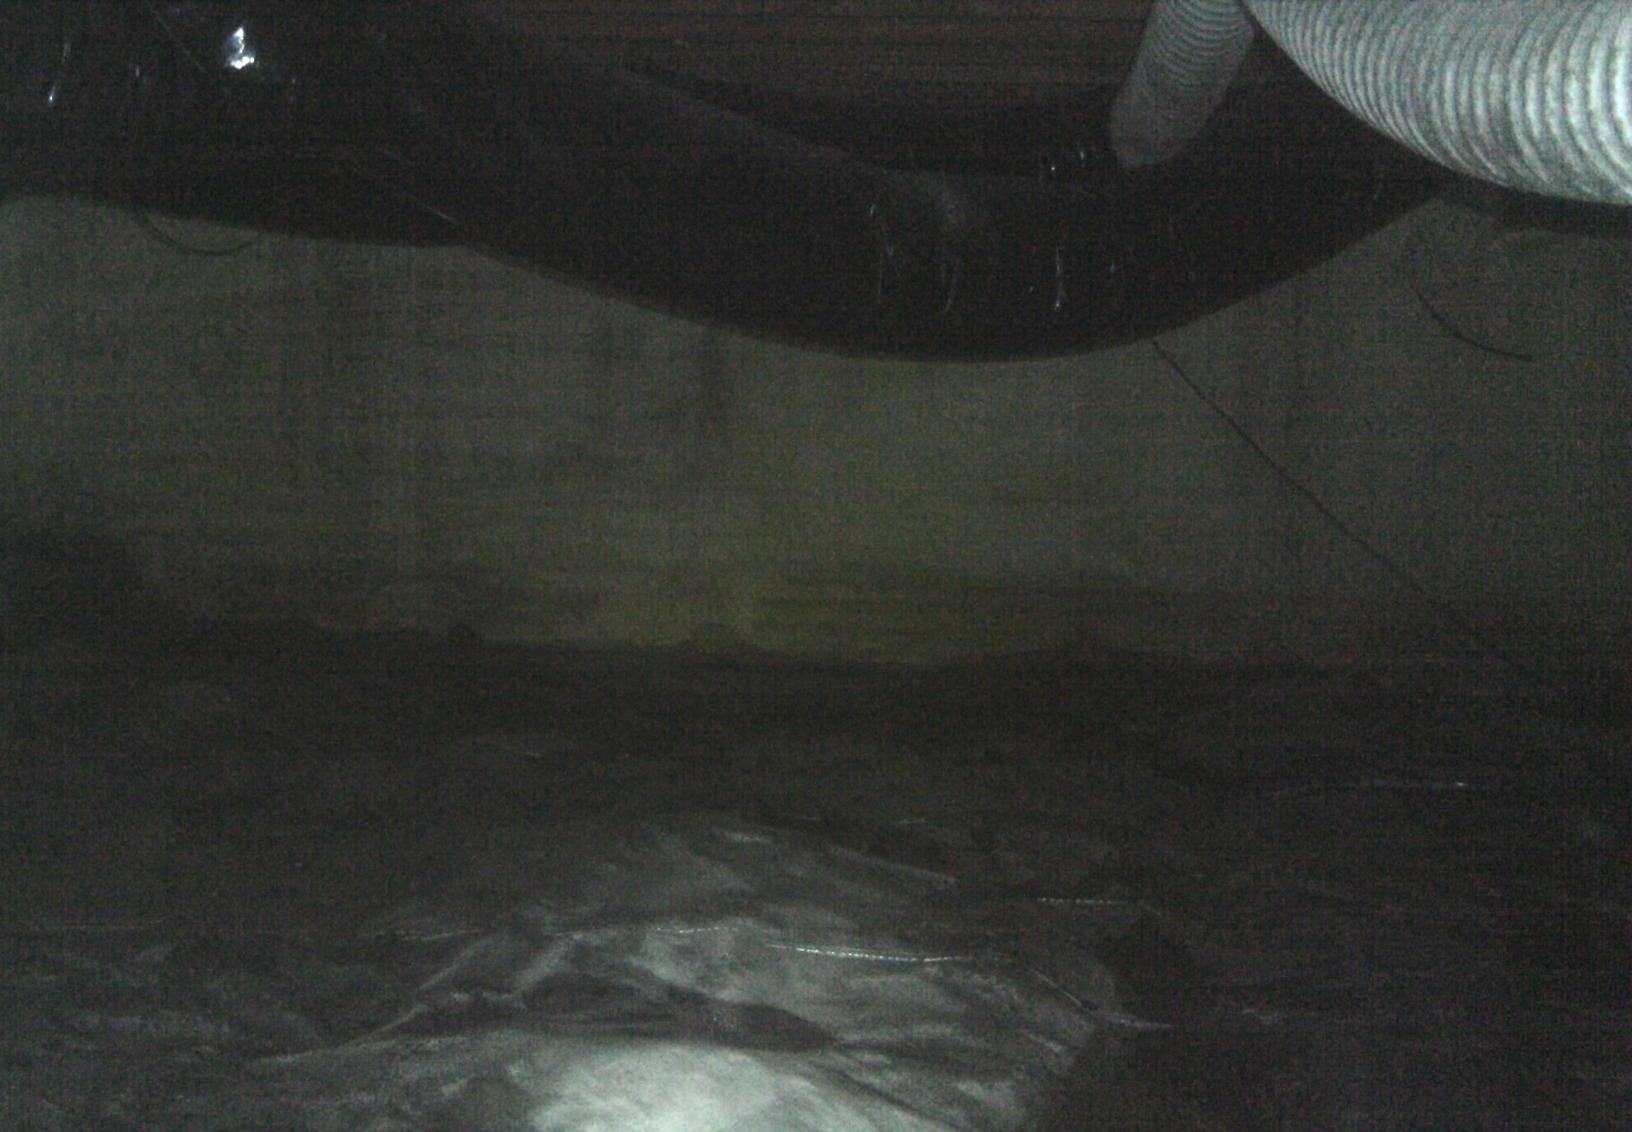 The crawl space was sealed with a thin liner that was not efficient enough to properly seal the space from the earth.